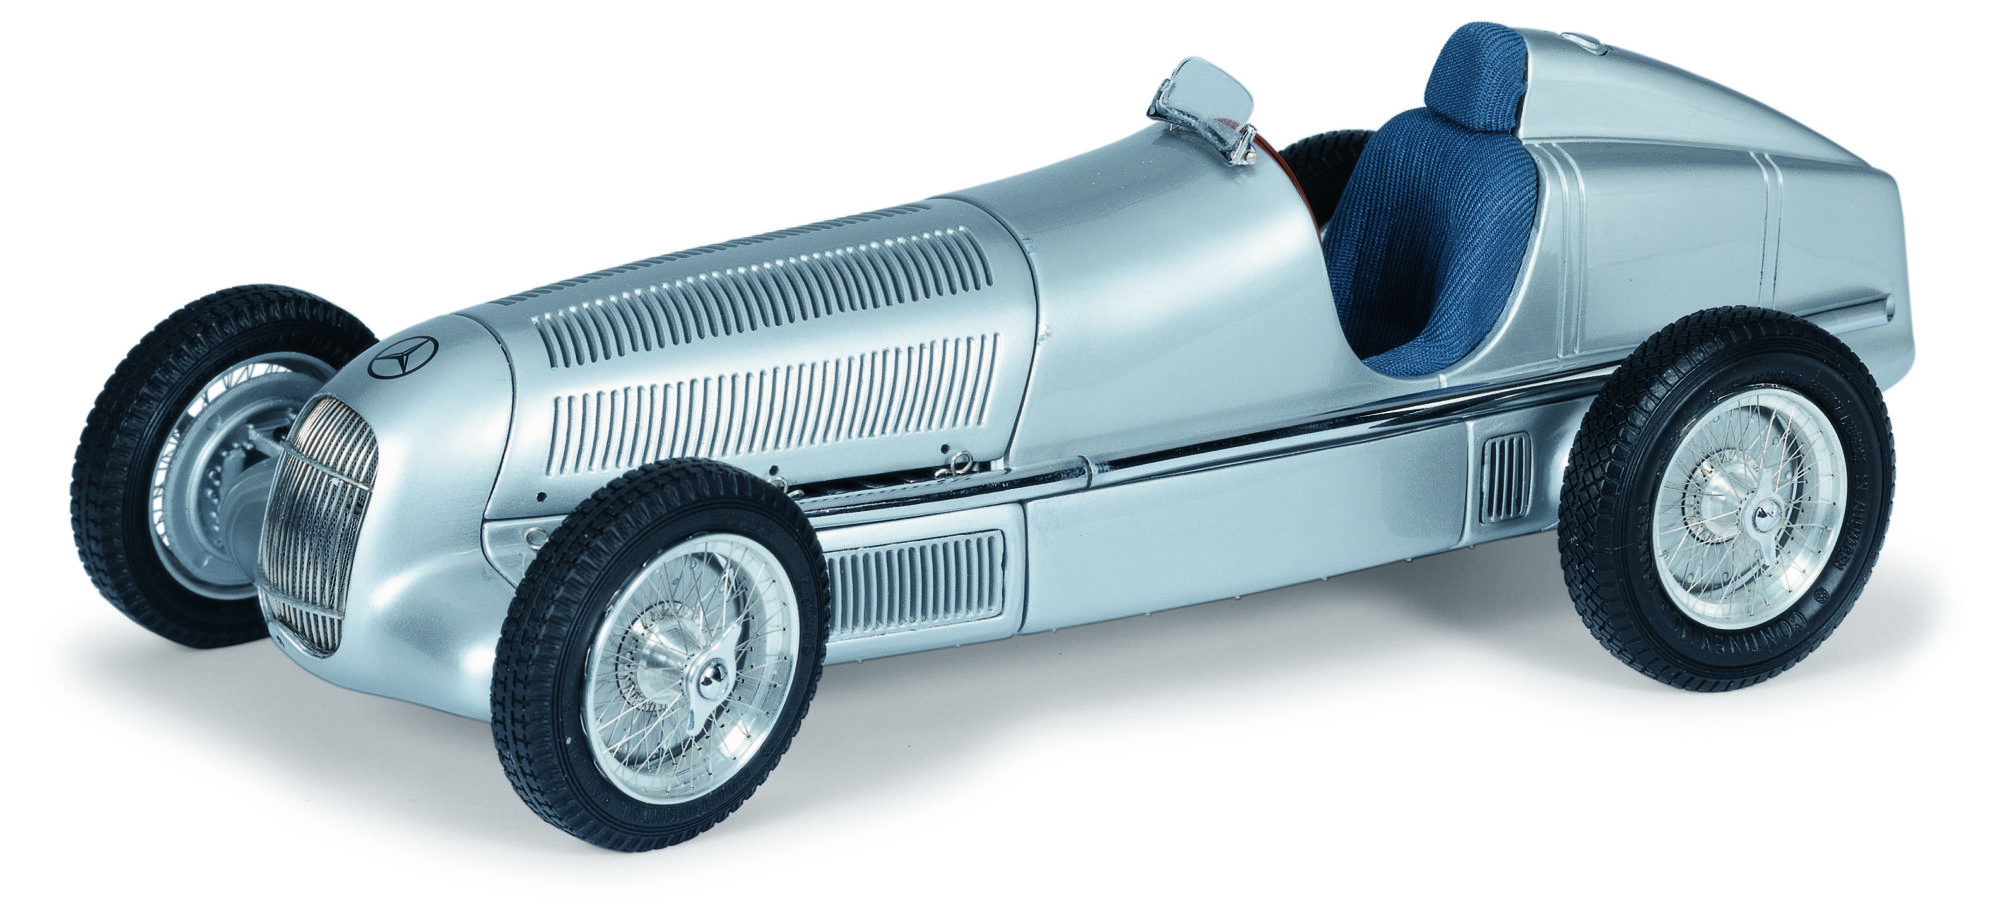 This is a 1934 Mercedes-Benz W25. This is the full model